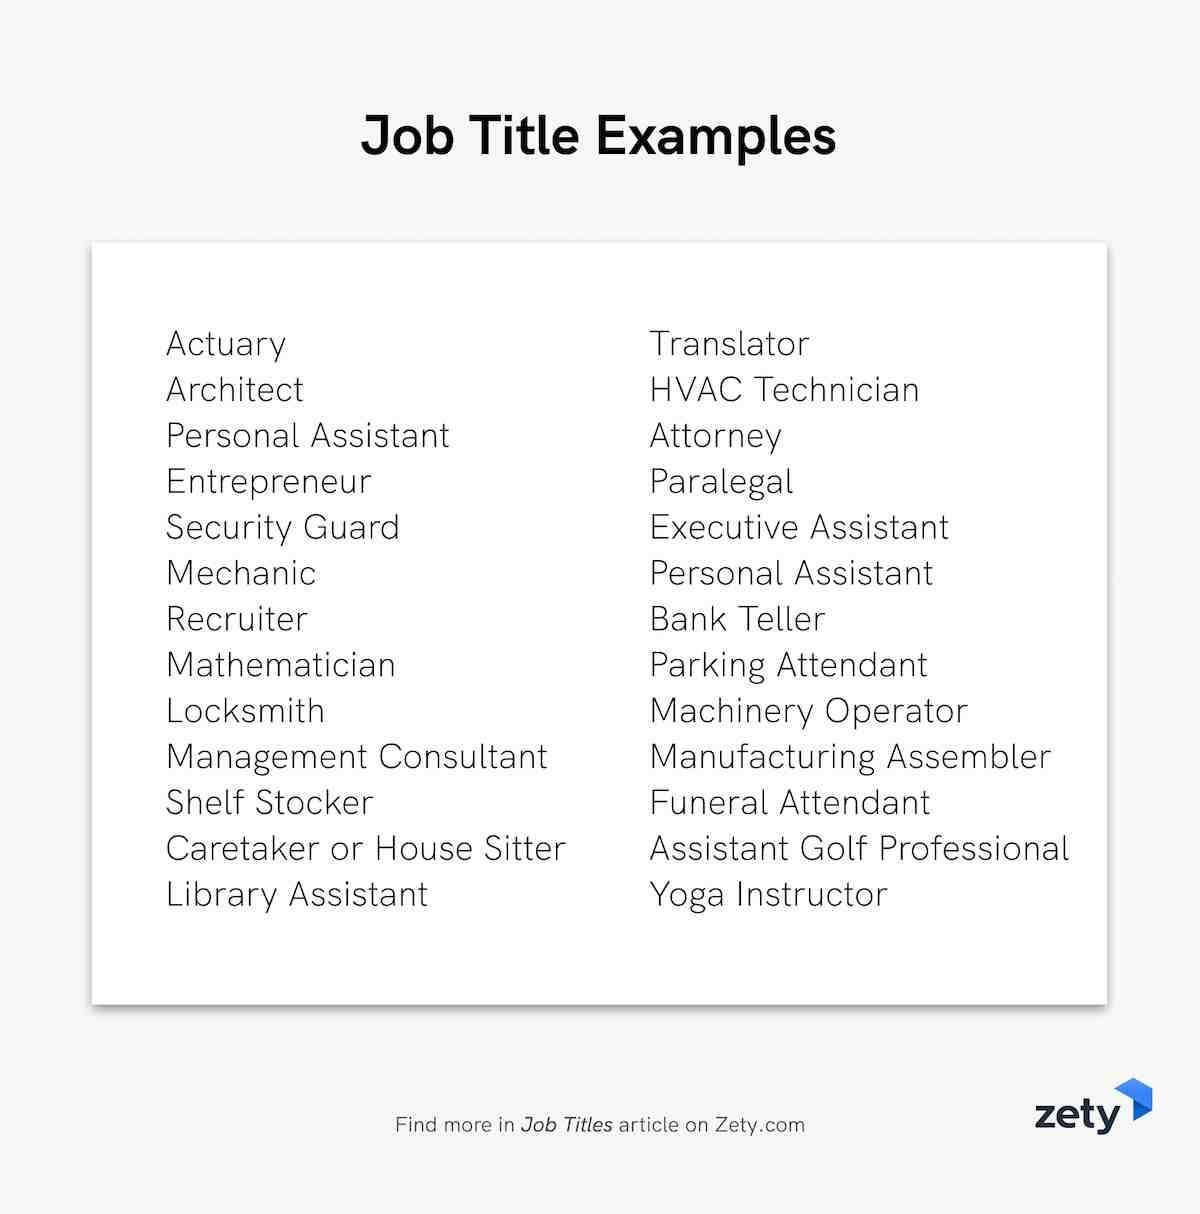 Job Title Examples